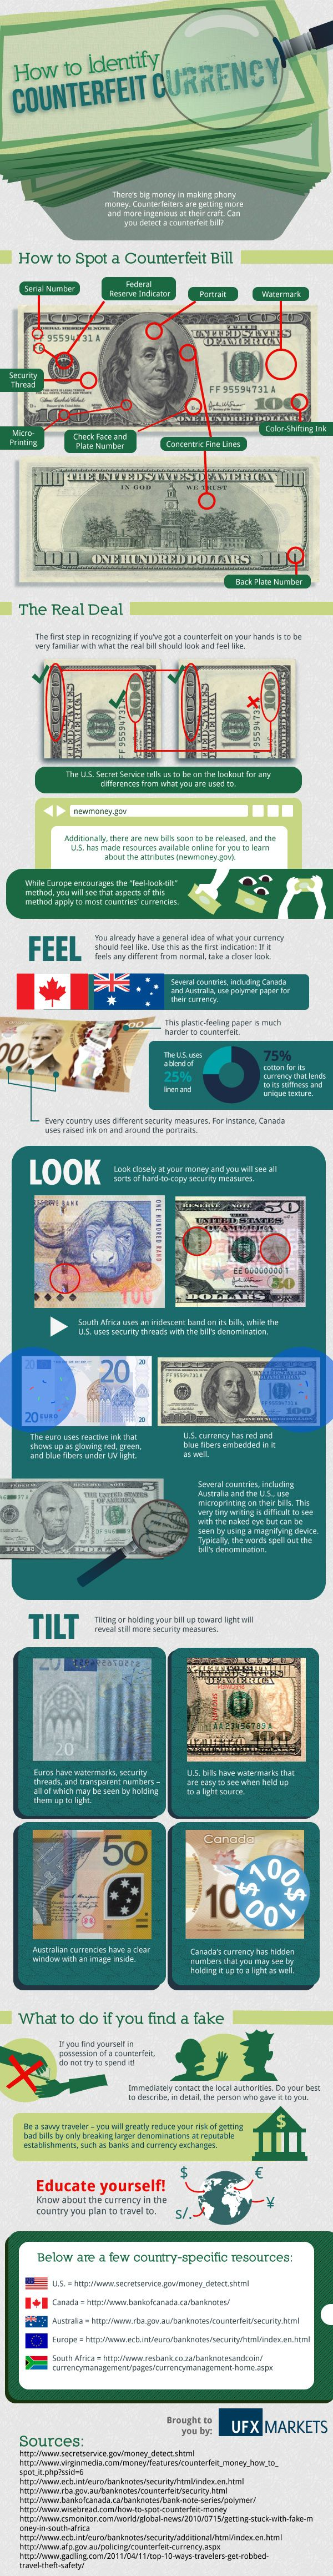 How To Indentify Counterfeit Currency[INFOGRAPHIC]